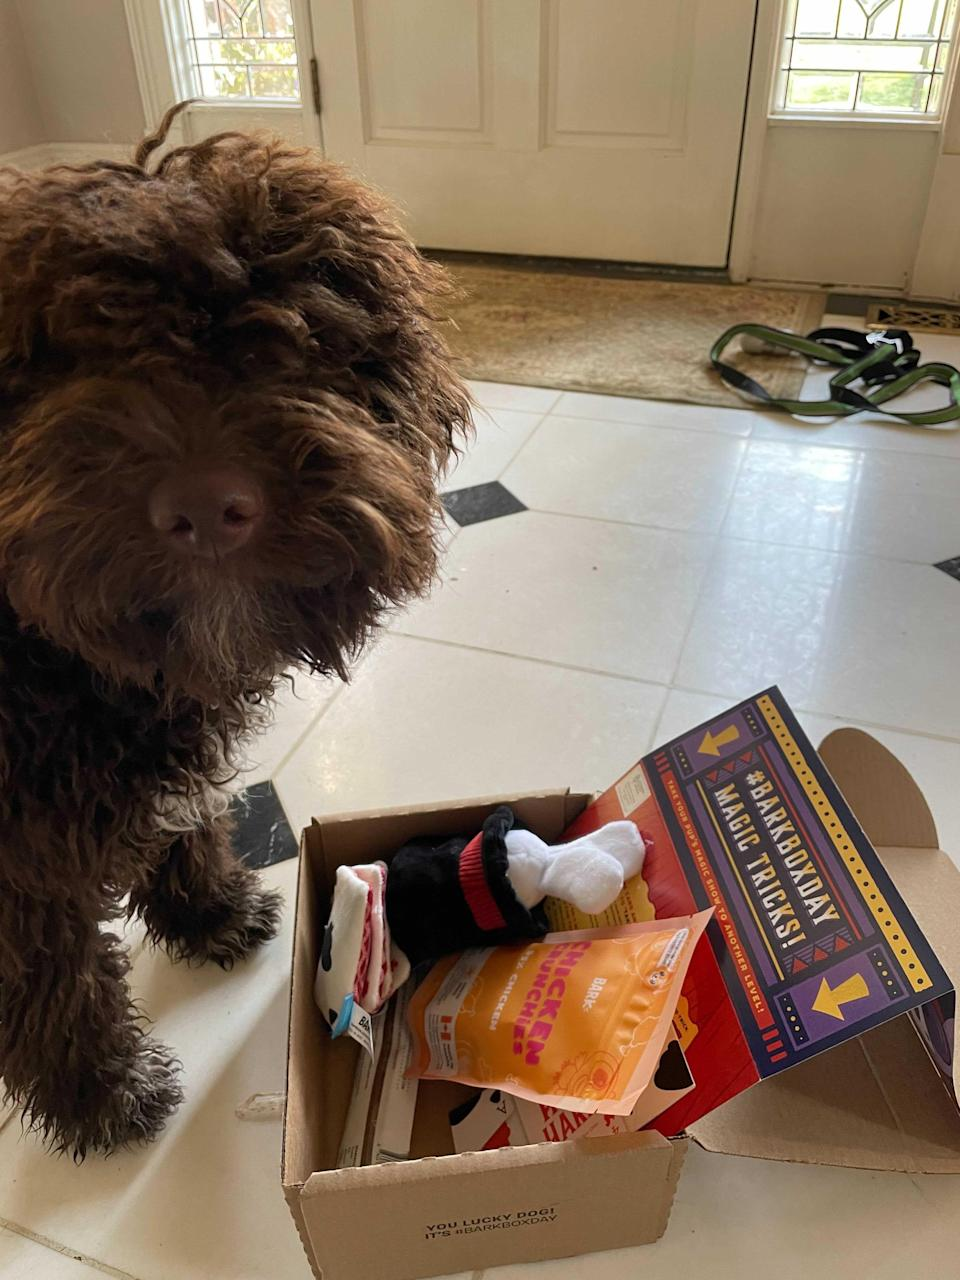 "<h2><h2>Monthly Barkbox Subscription</h2></h2><br>""The first thing I did after bringing Lucca home was sign up for Barkbox. Do I think I need new toys each month for one dog for the rest of his life? No. Do I think I need new toys each month for one dog for the first 6 months in his new home? Absolutely. So far, we've gotten four boxes and each one has come with its own incredibly charming theme and nutritious delicious treats. A Barkbox subscription is also a fun idea to gift a new dog parent in your life. I mean, look how happy he is."" — <em>Morgan</em><br><br><strong>Barkbox</strong> Barkbox Subscription Box, $, available at <a href=""https://go.skimresources.com/?id=30283X879131&url=https%3A%2F%2Fwww.barkbox.com%2Fsubscribe%2F"" rel=""nofollow noopener"" target=""_blank"" data-ylk=""slk:BarkBox"" class=""link rapid-noclick-resp"">BarkBox</a>"